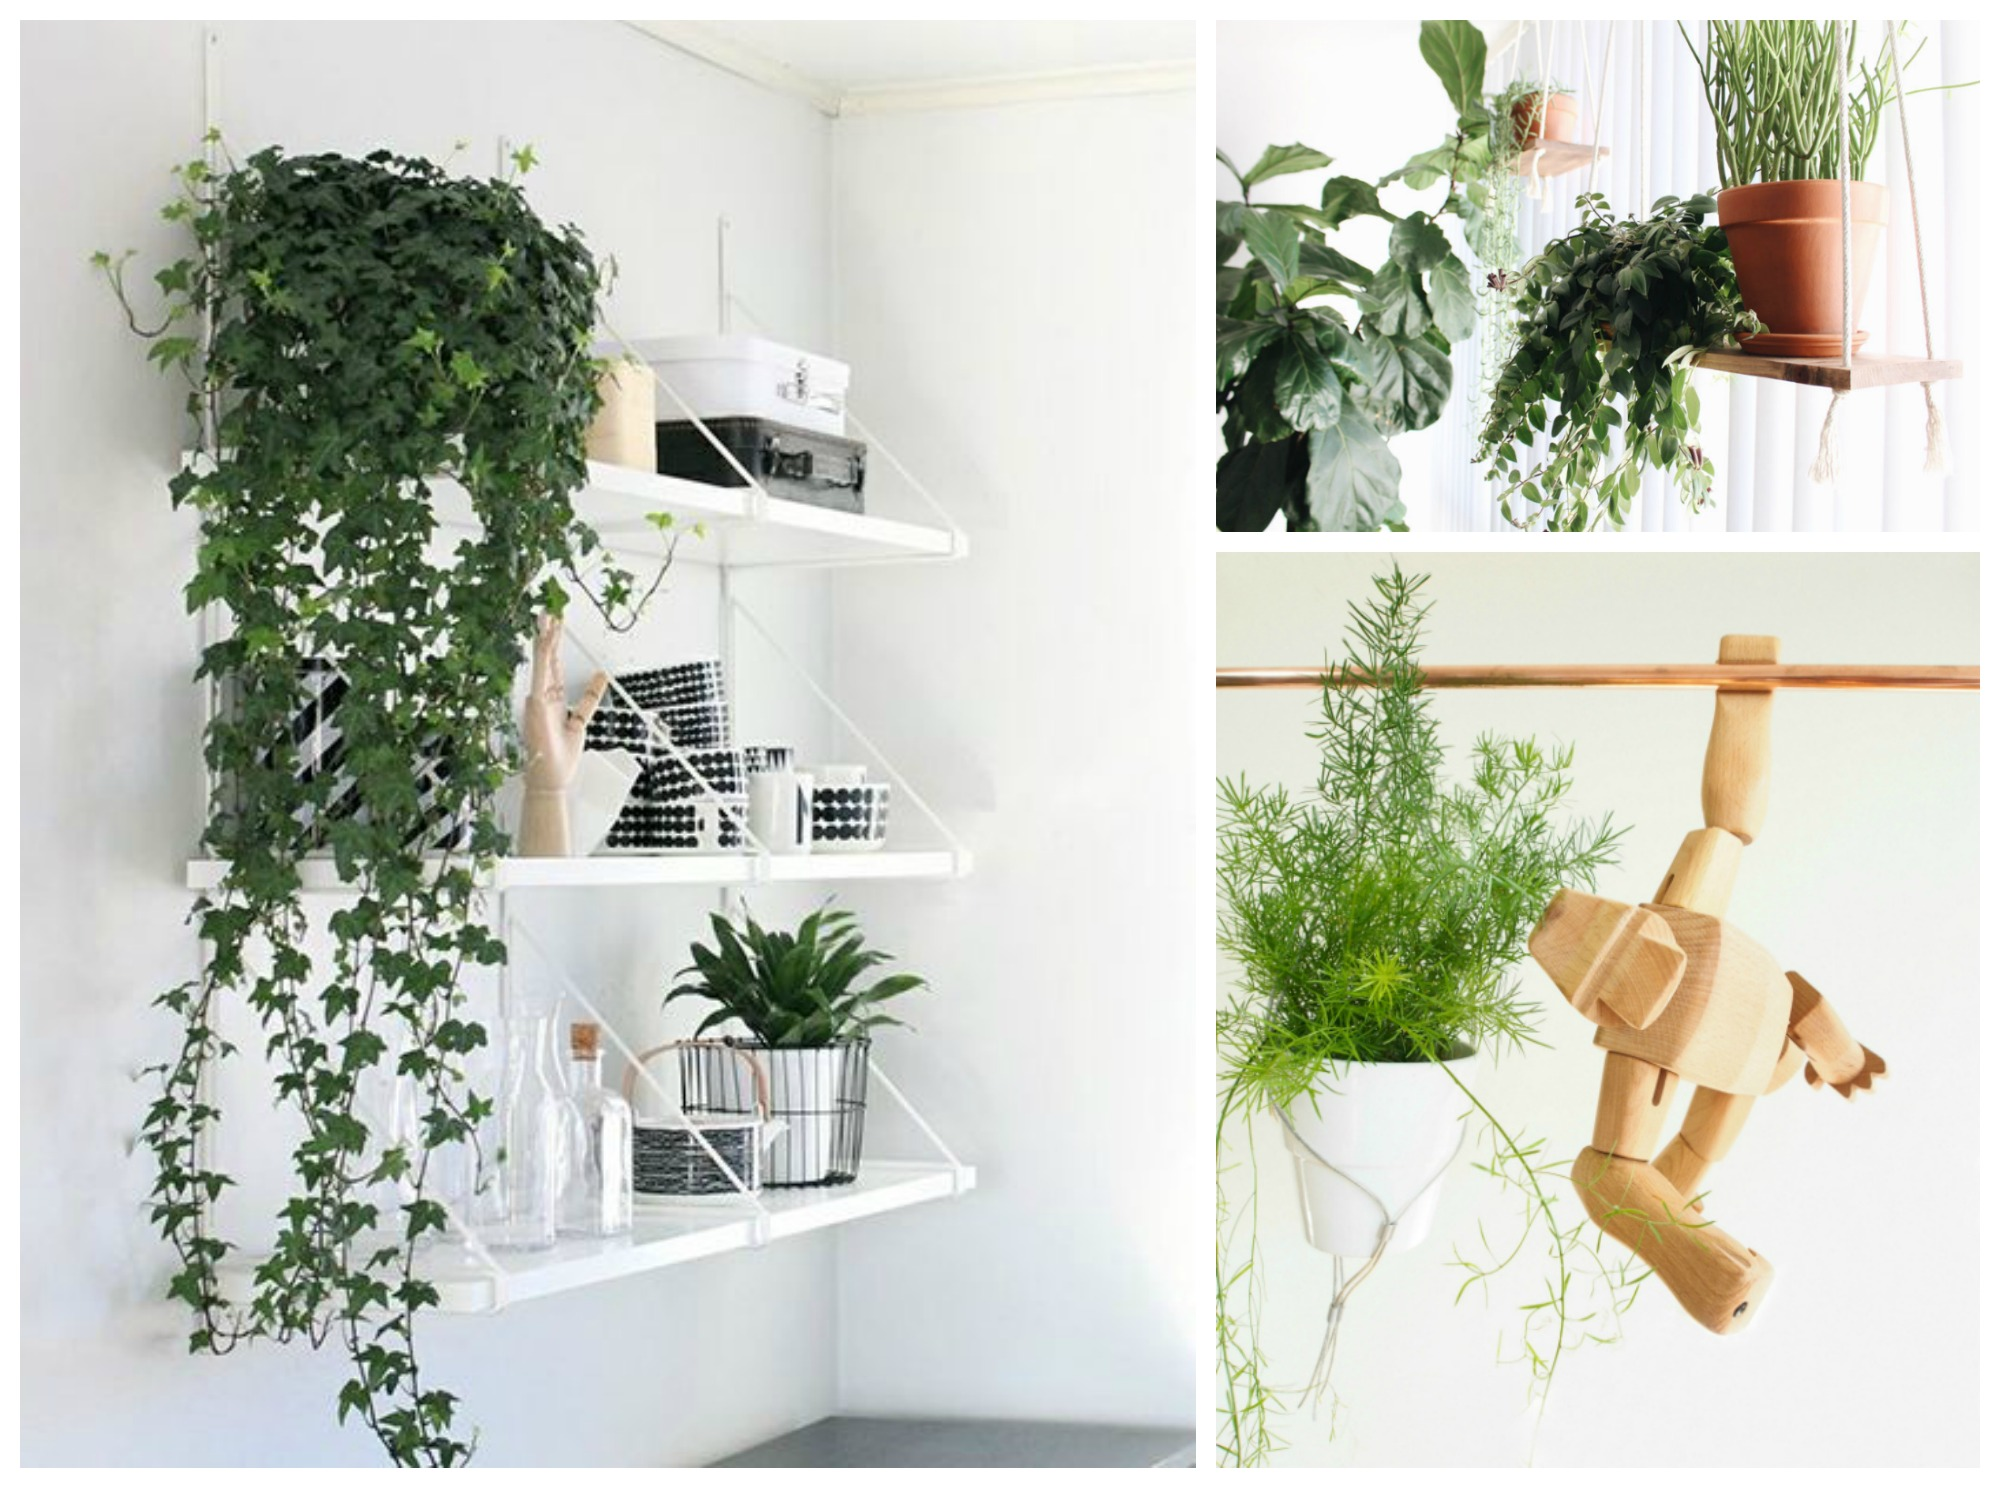 10 Hanging Plants That Ll Make Your Home Look Amazing Chasing Foxes